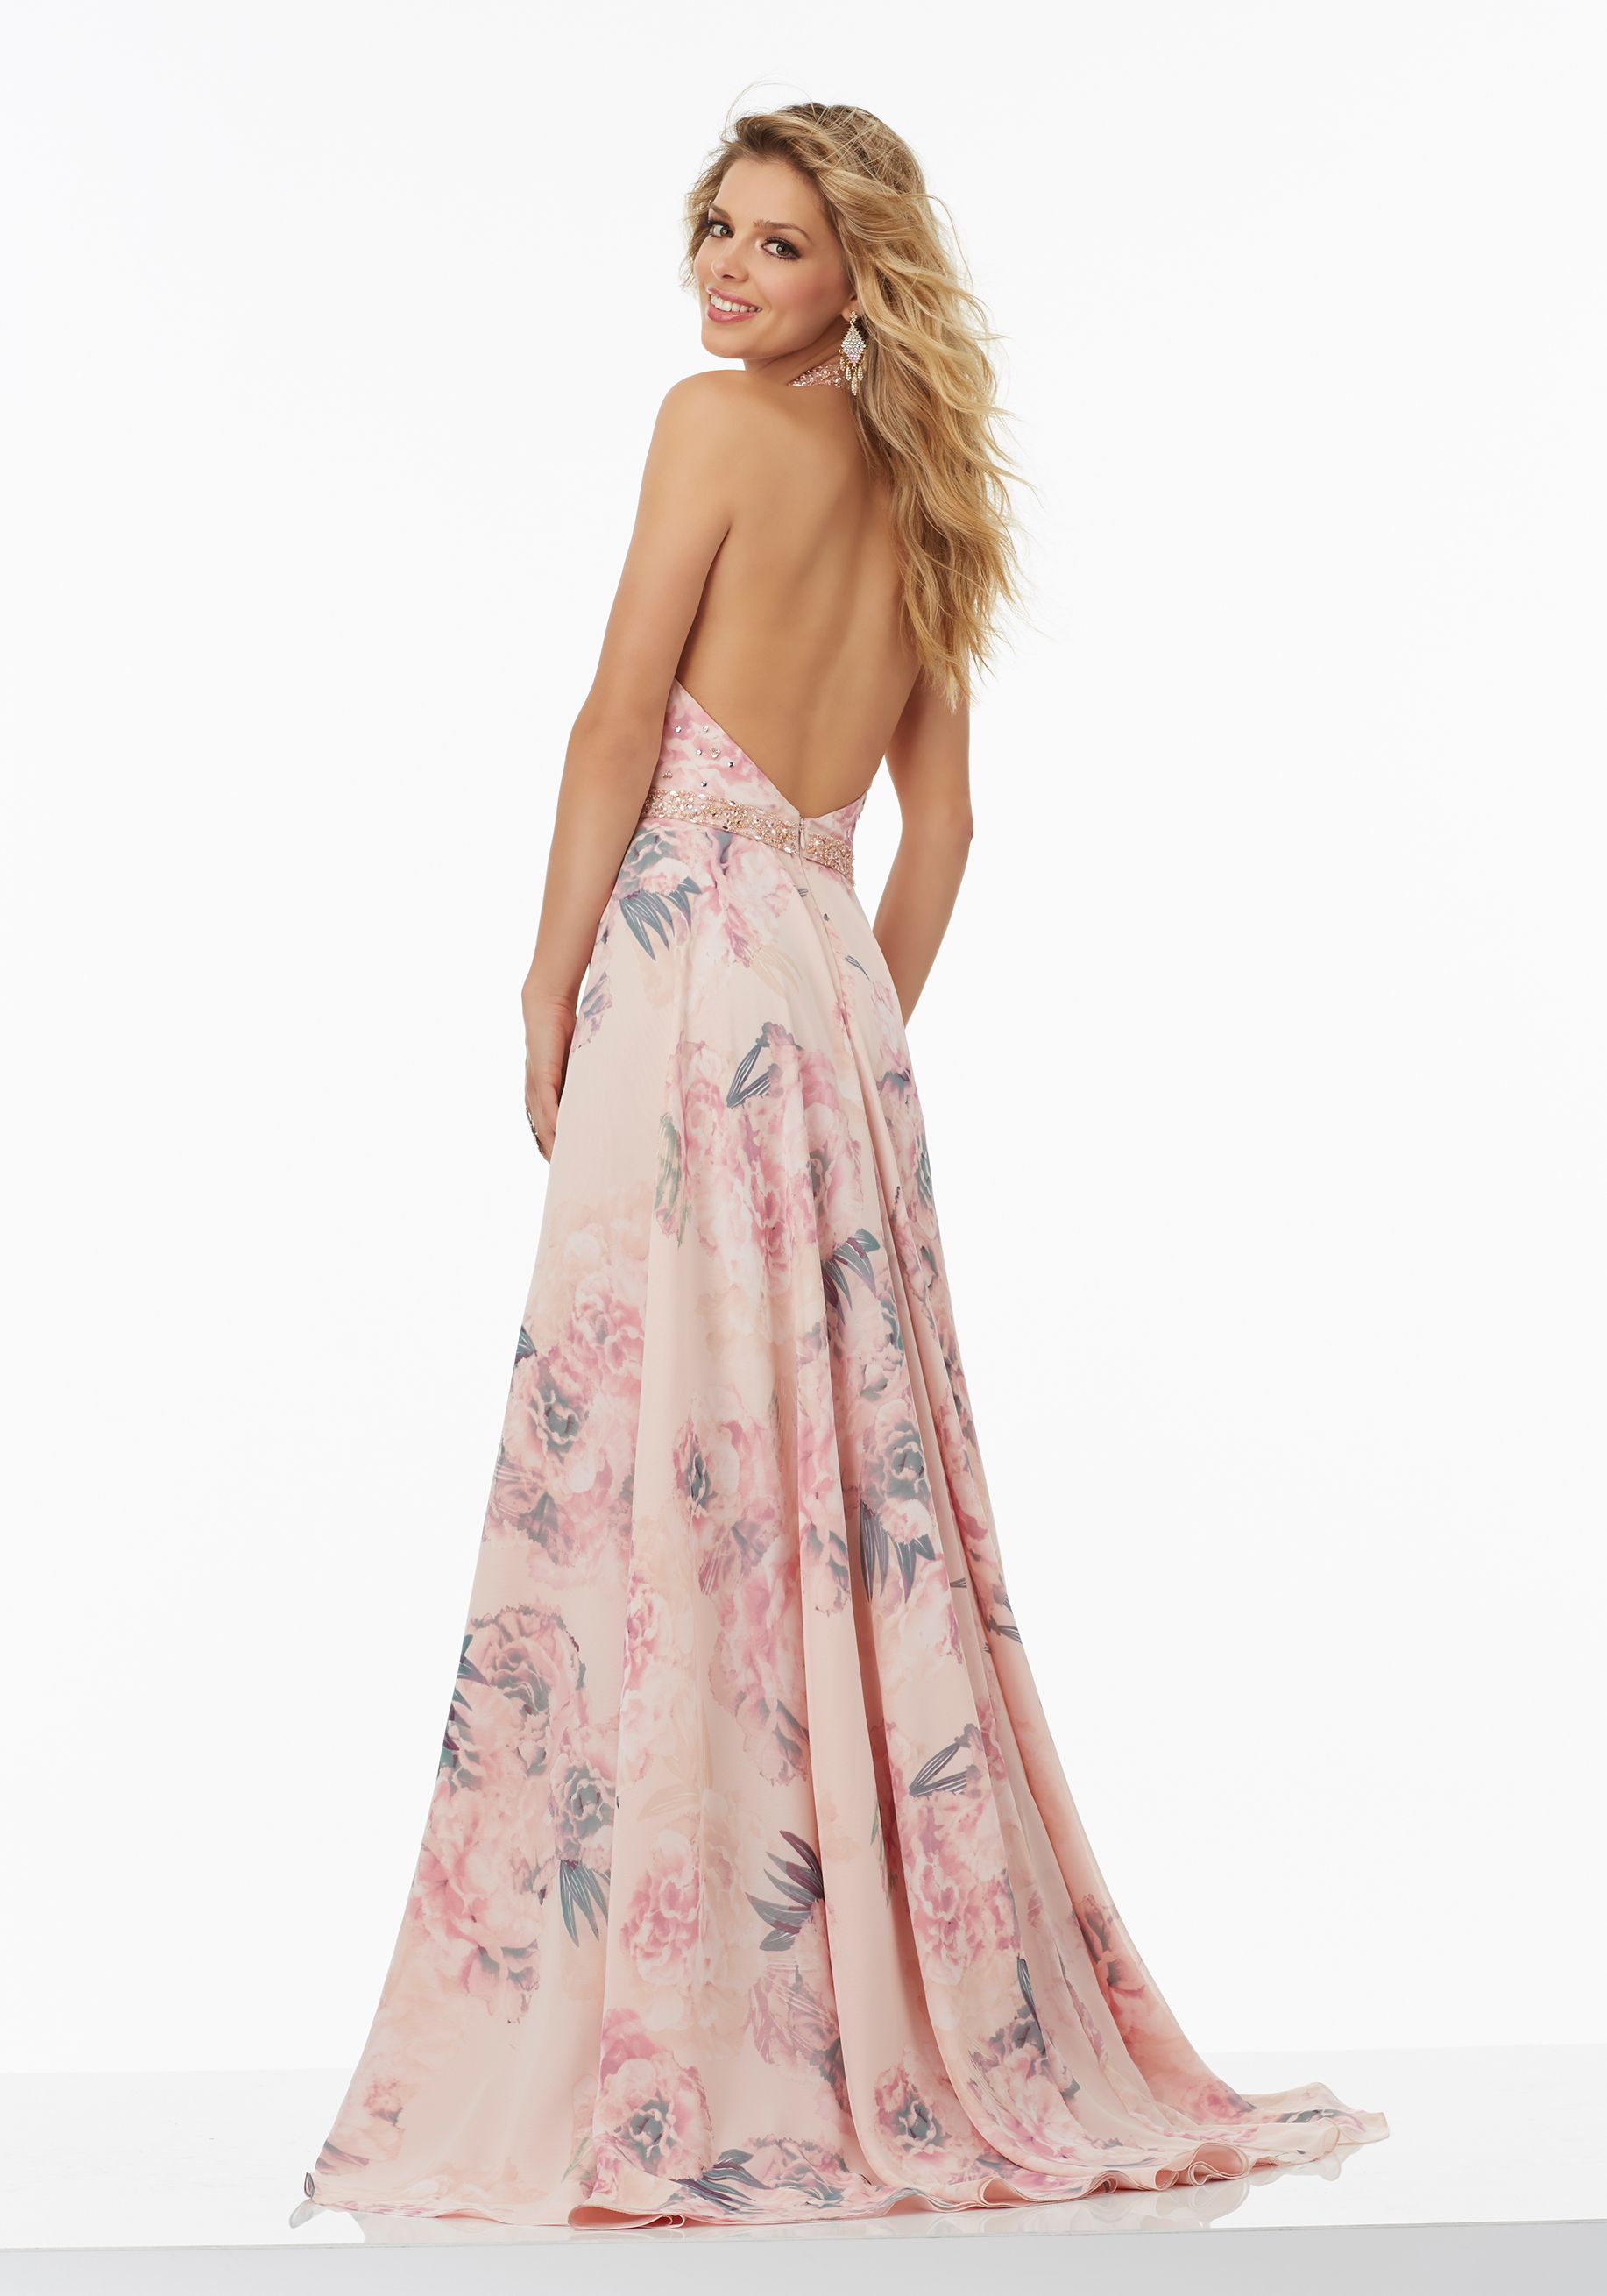 73eba570822 Floral Printed Chiffon Prom Dress with Delicately Beaded Bodice